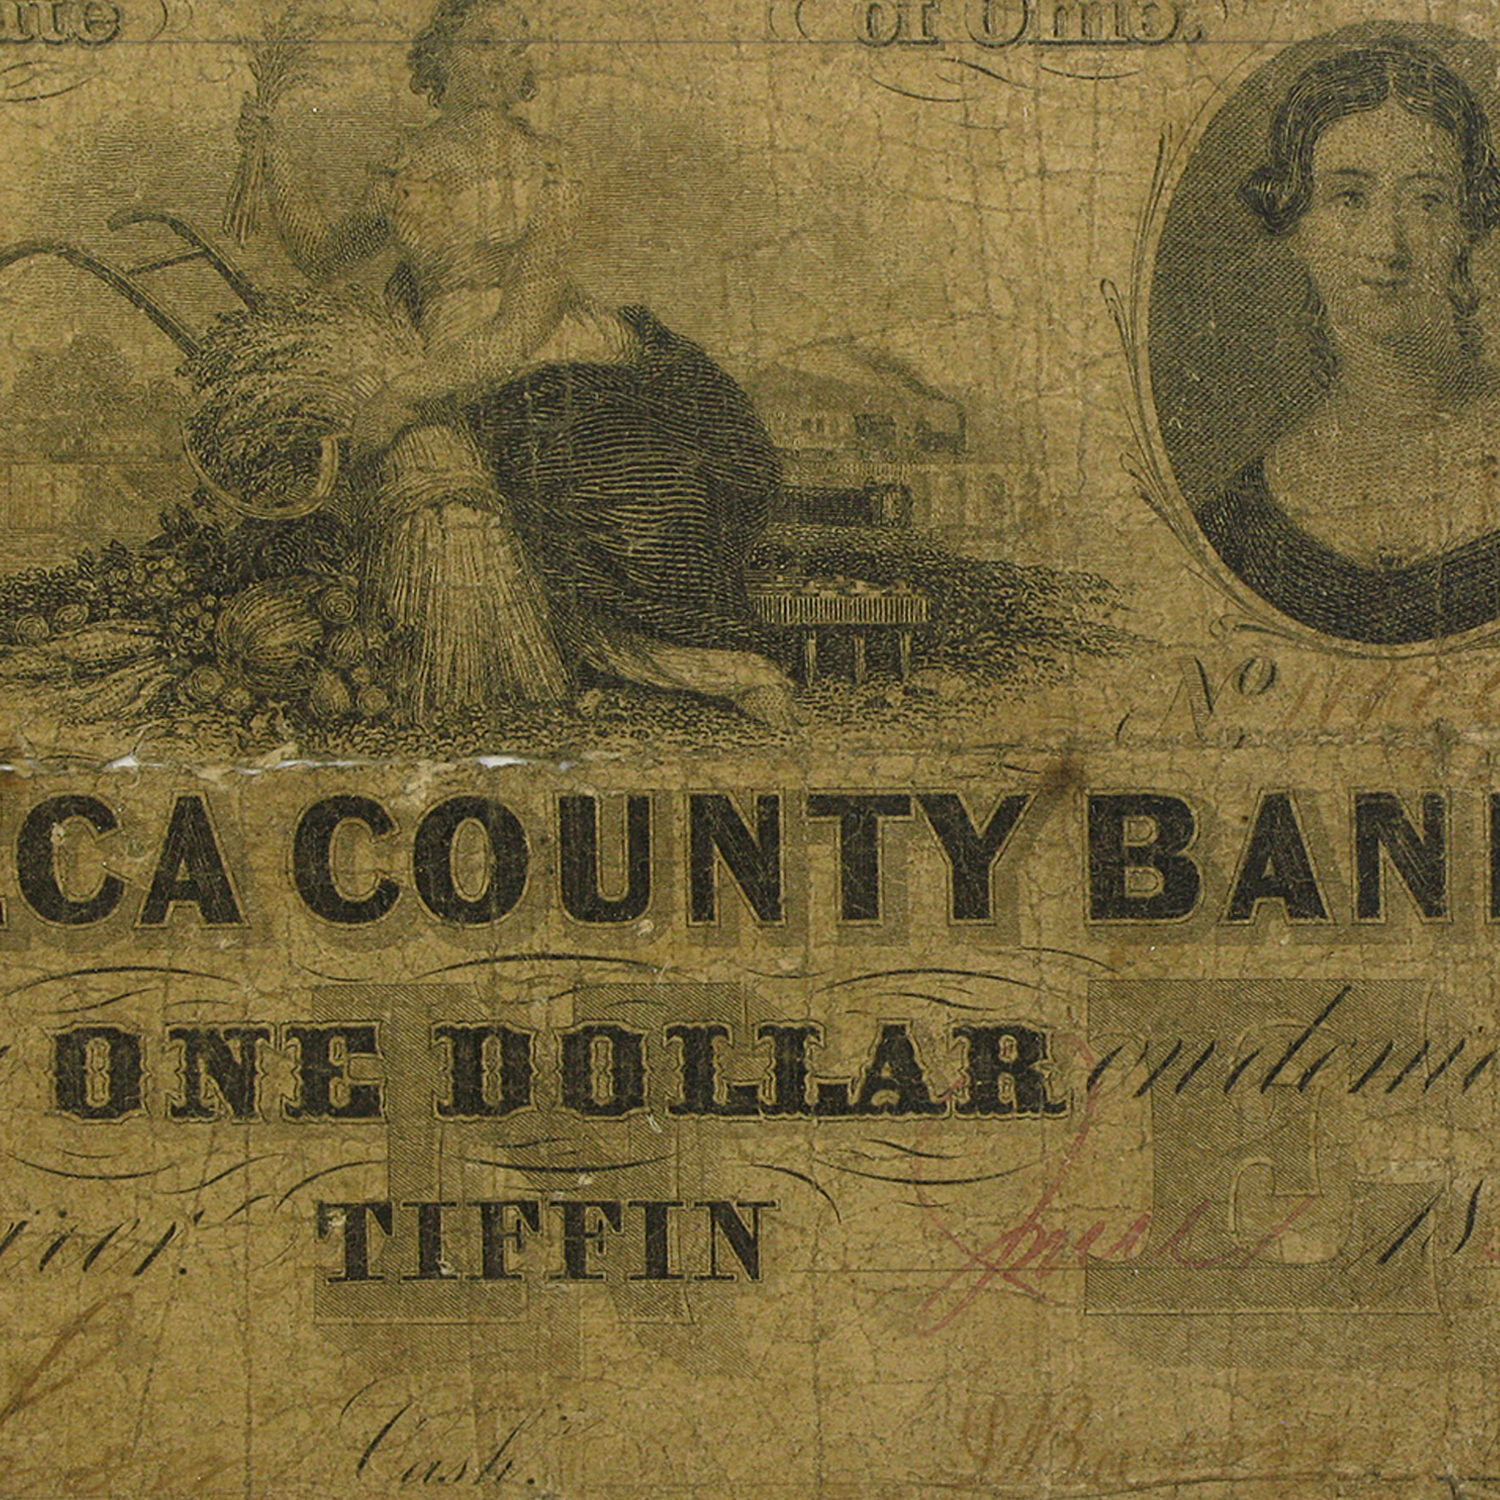 1856 Seneca Co Bank of Tiffin, Ohio, $1.00 Good